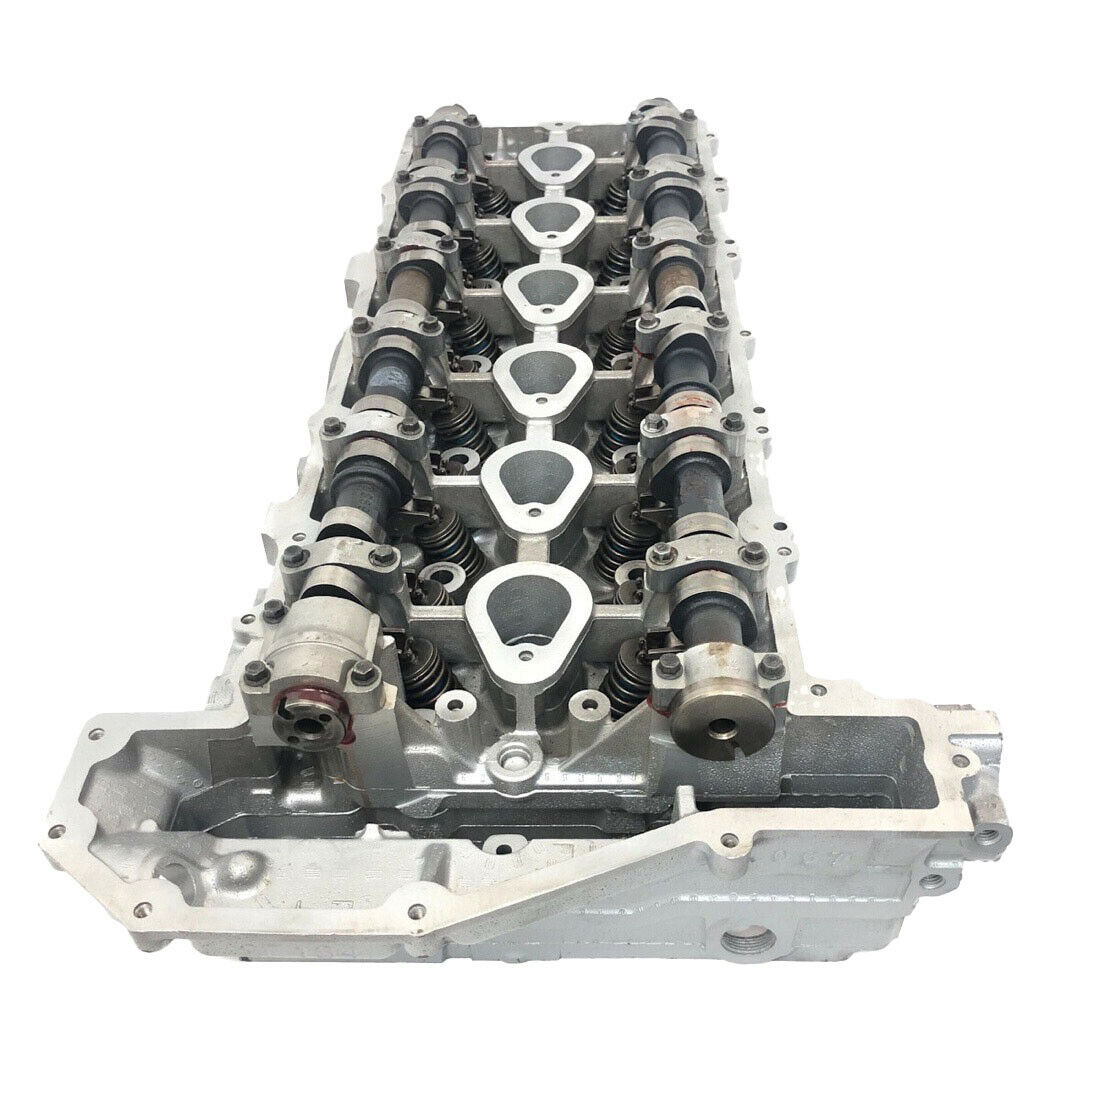 Genuine GM Chevrolet GMC Isuzu Buick SAAB 4.2L 6cyl Cylinder Head Assembly 02-05